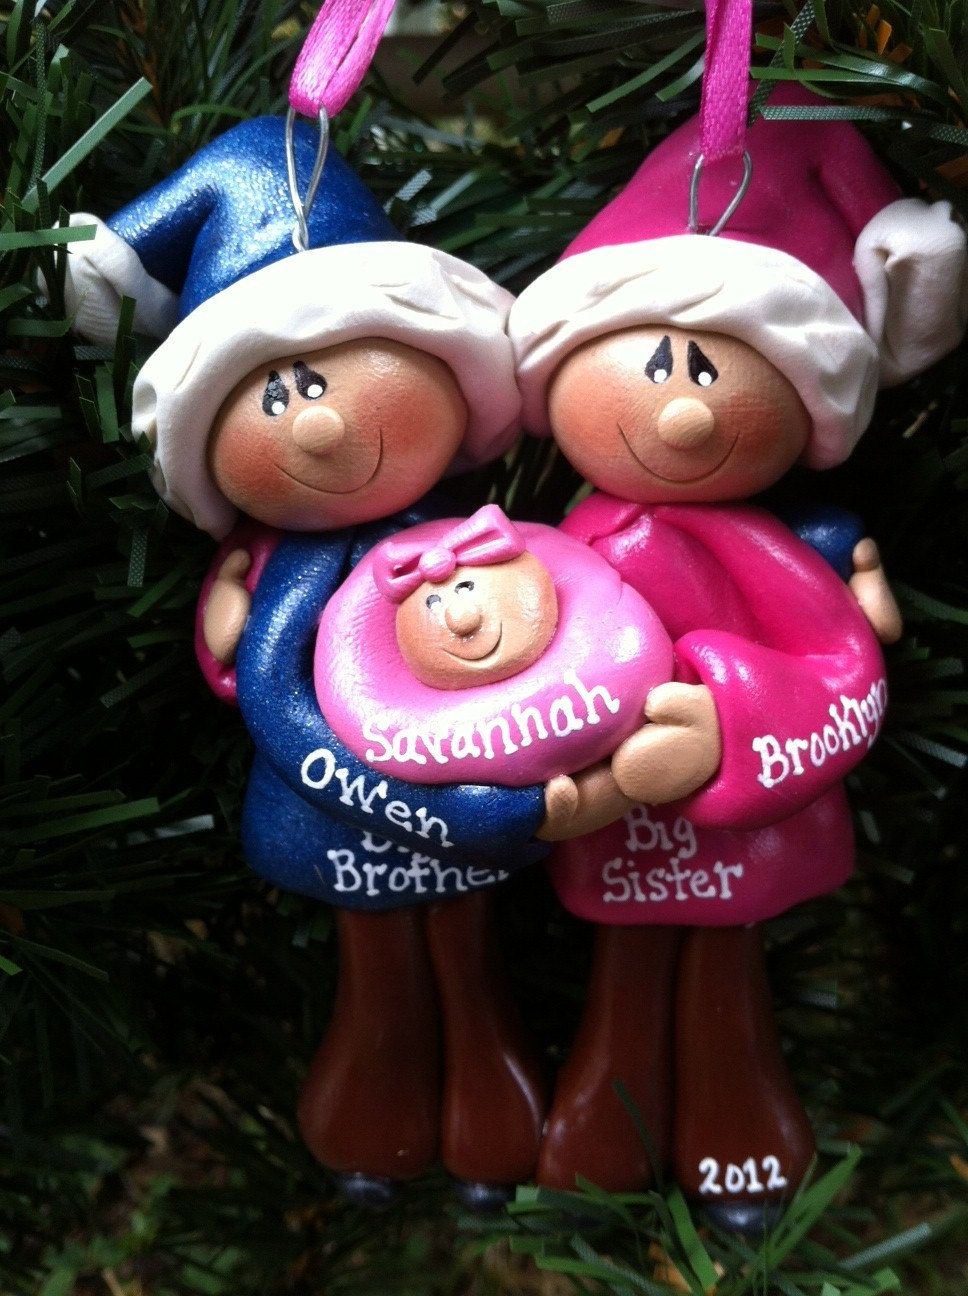 Personalized baby christmas ornaments - Personalized Big Brother Big Sister Little Brother Little Sister With Baby Christmas Ornament